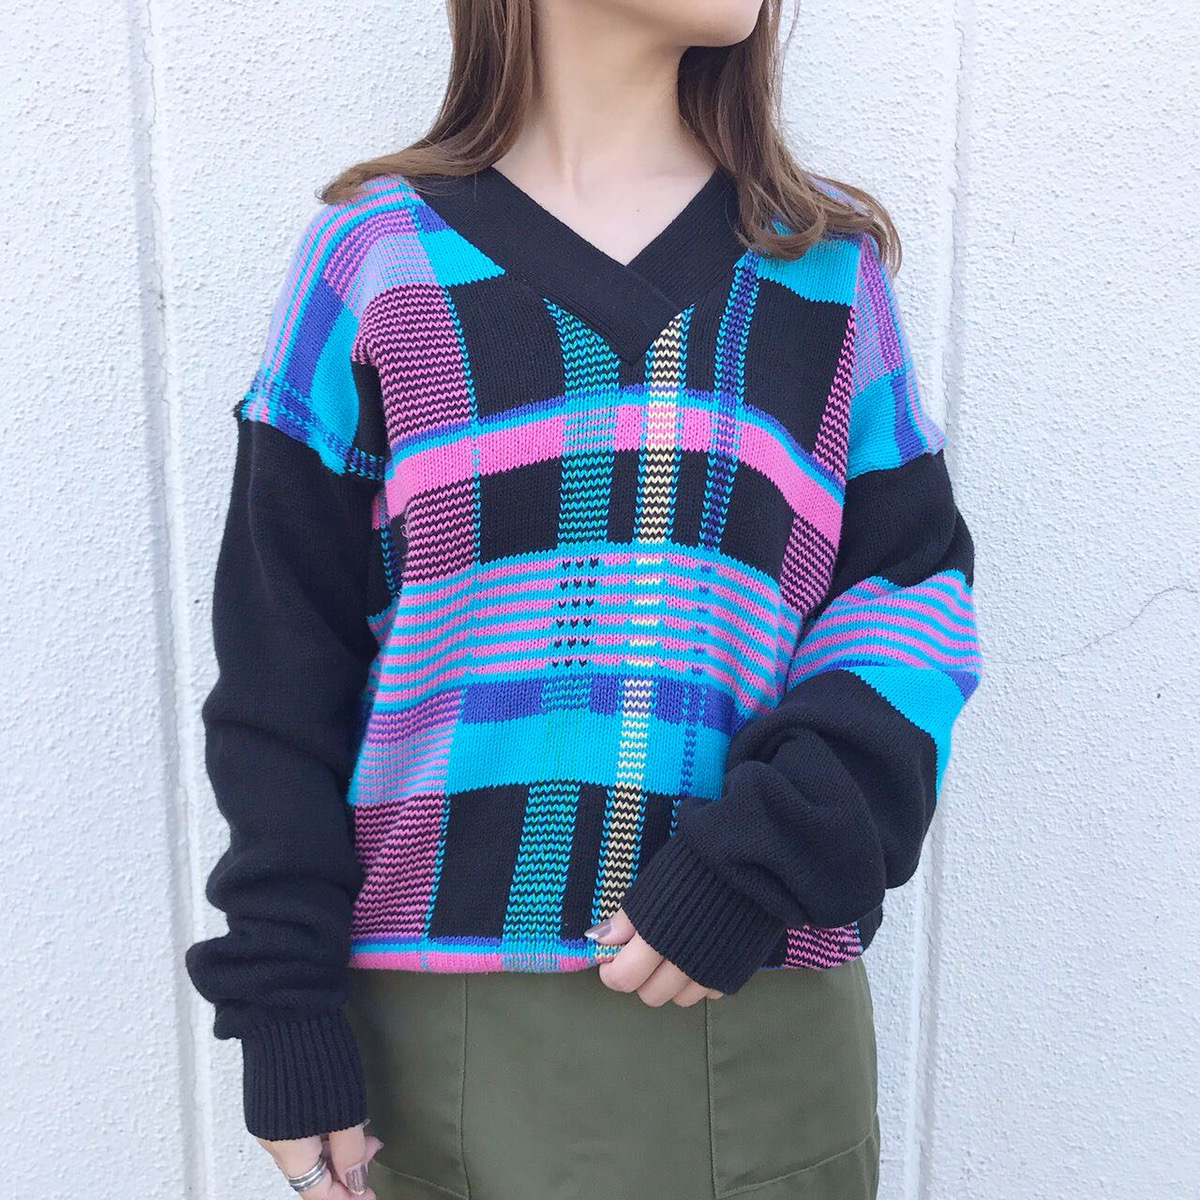 psychedelic knit